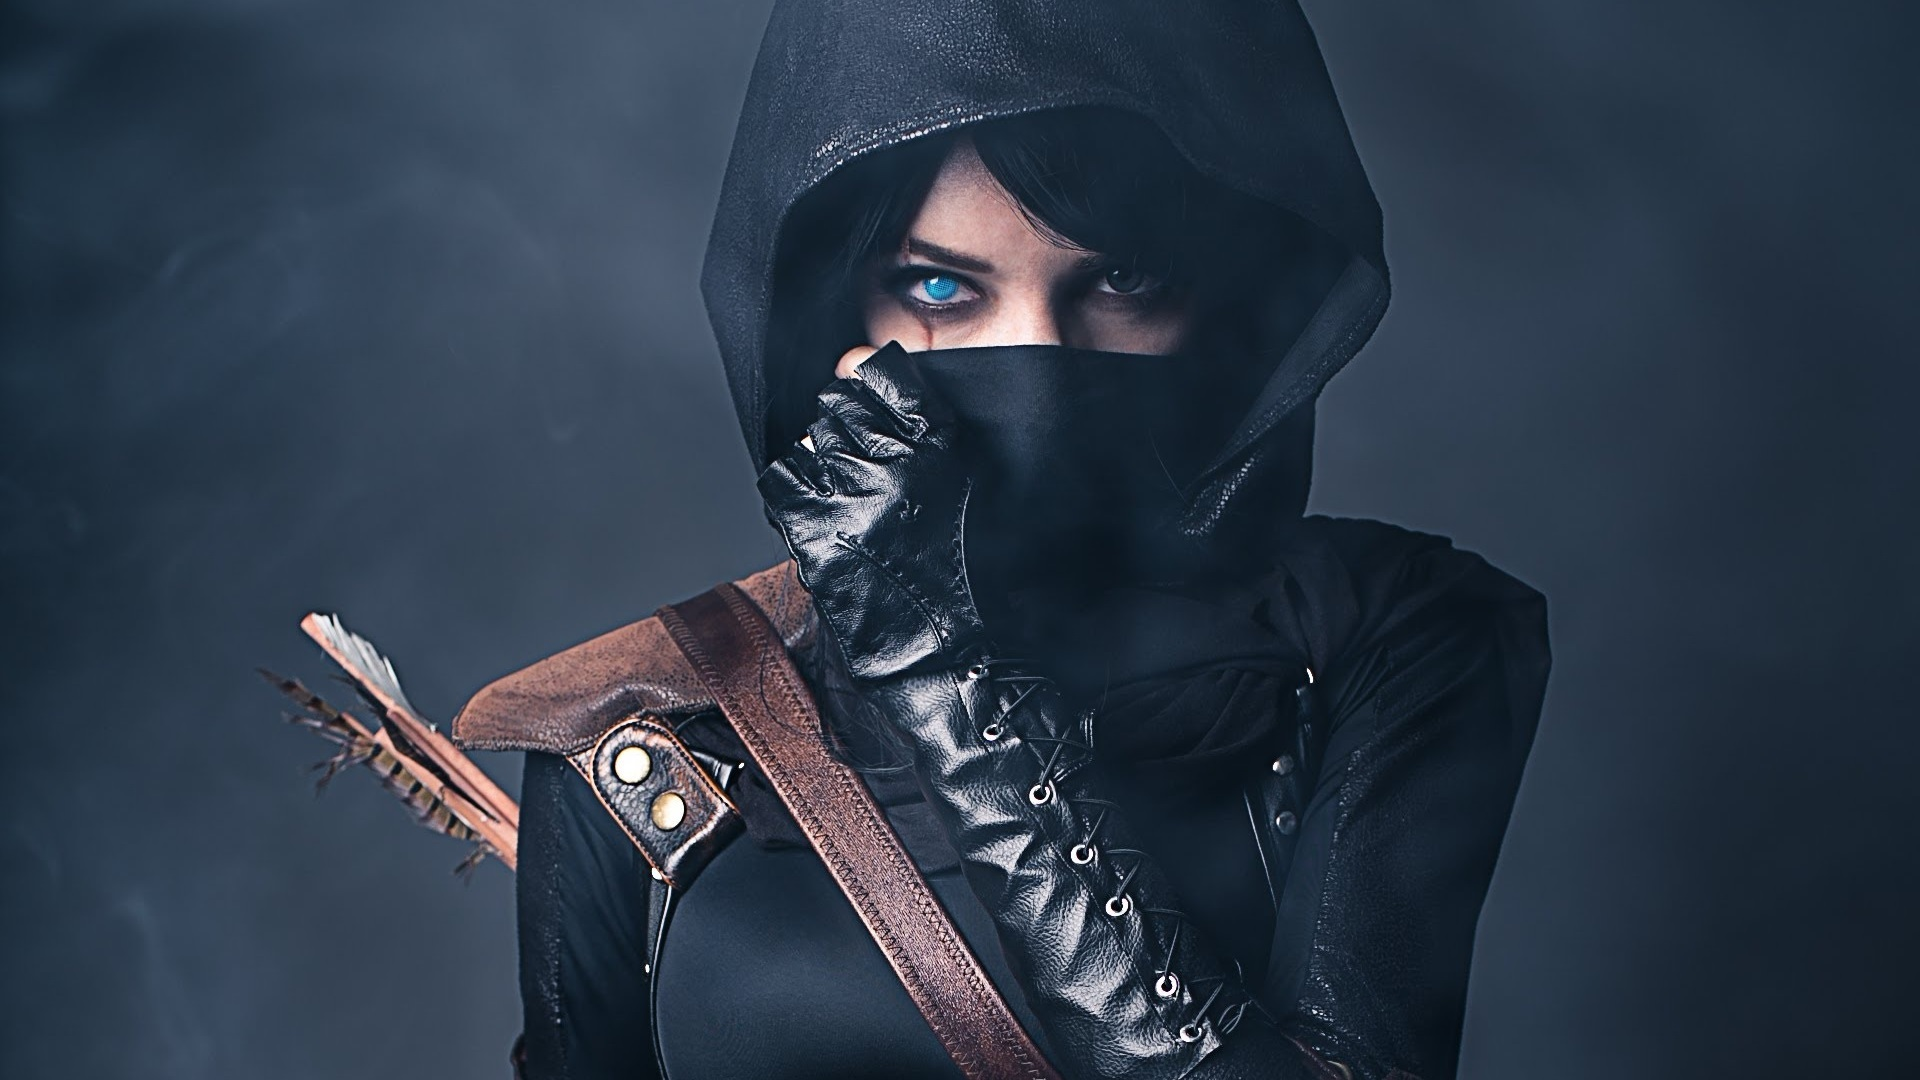 leather girl wallpaper - photo #15